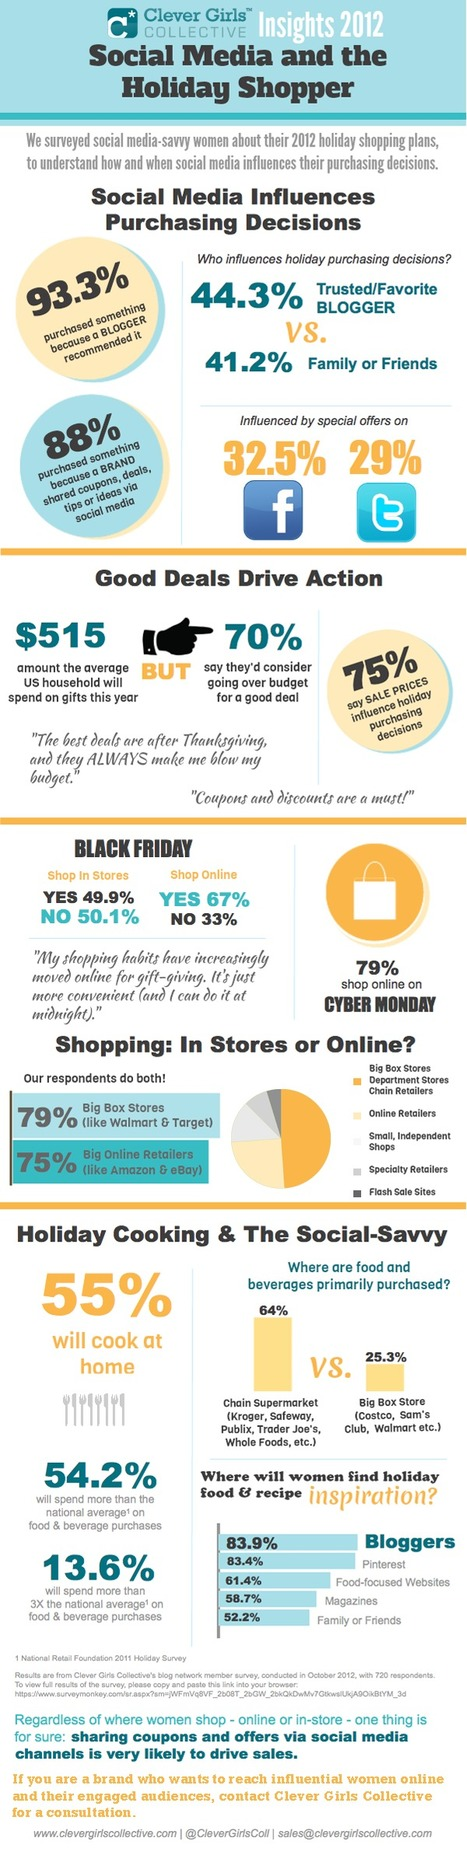 Social Media and the Female Holiday Shopper (Infographic) | Business 2 Community | How to Market Your Small Business | Scoop.it